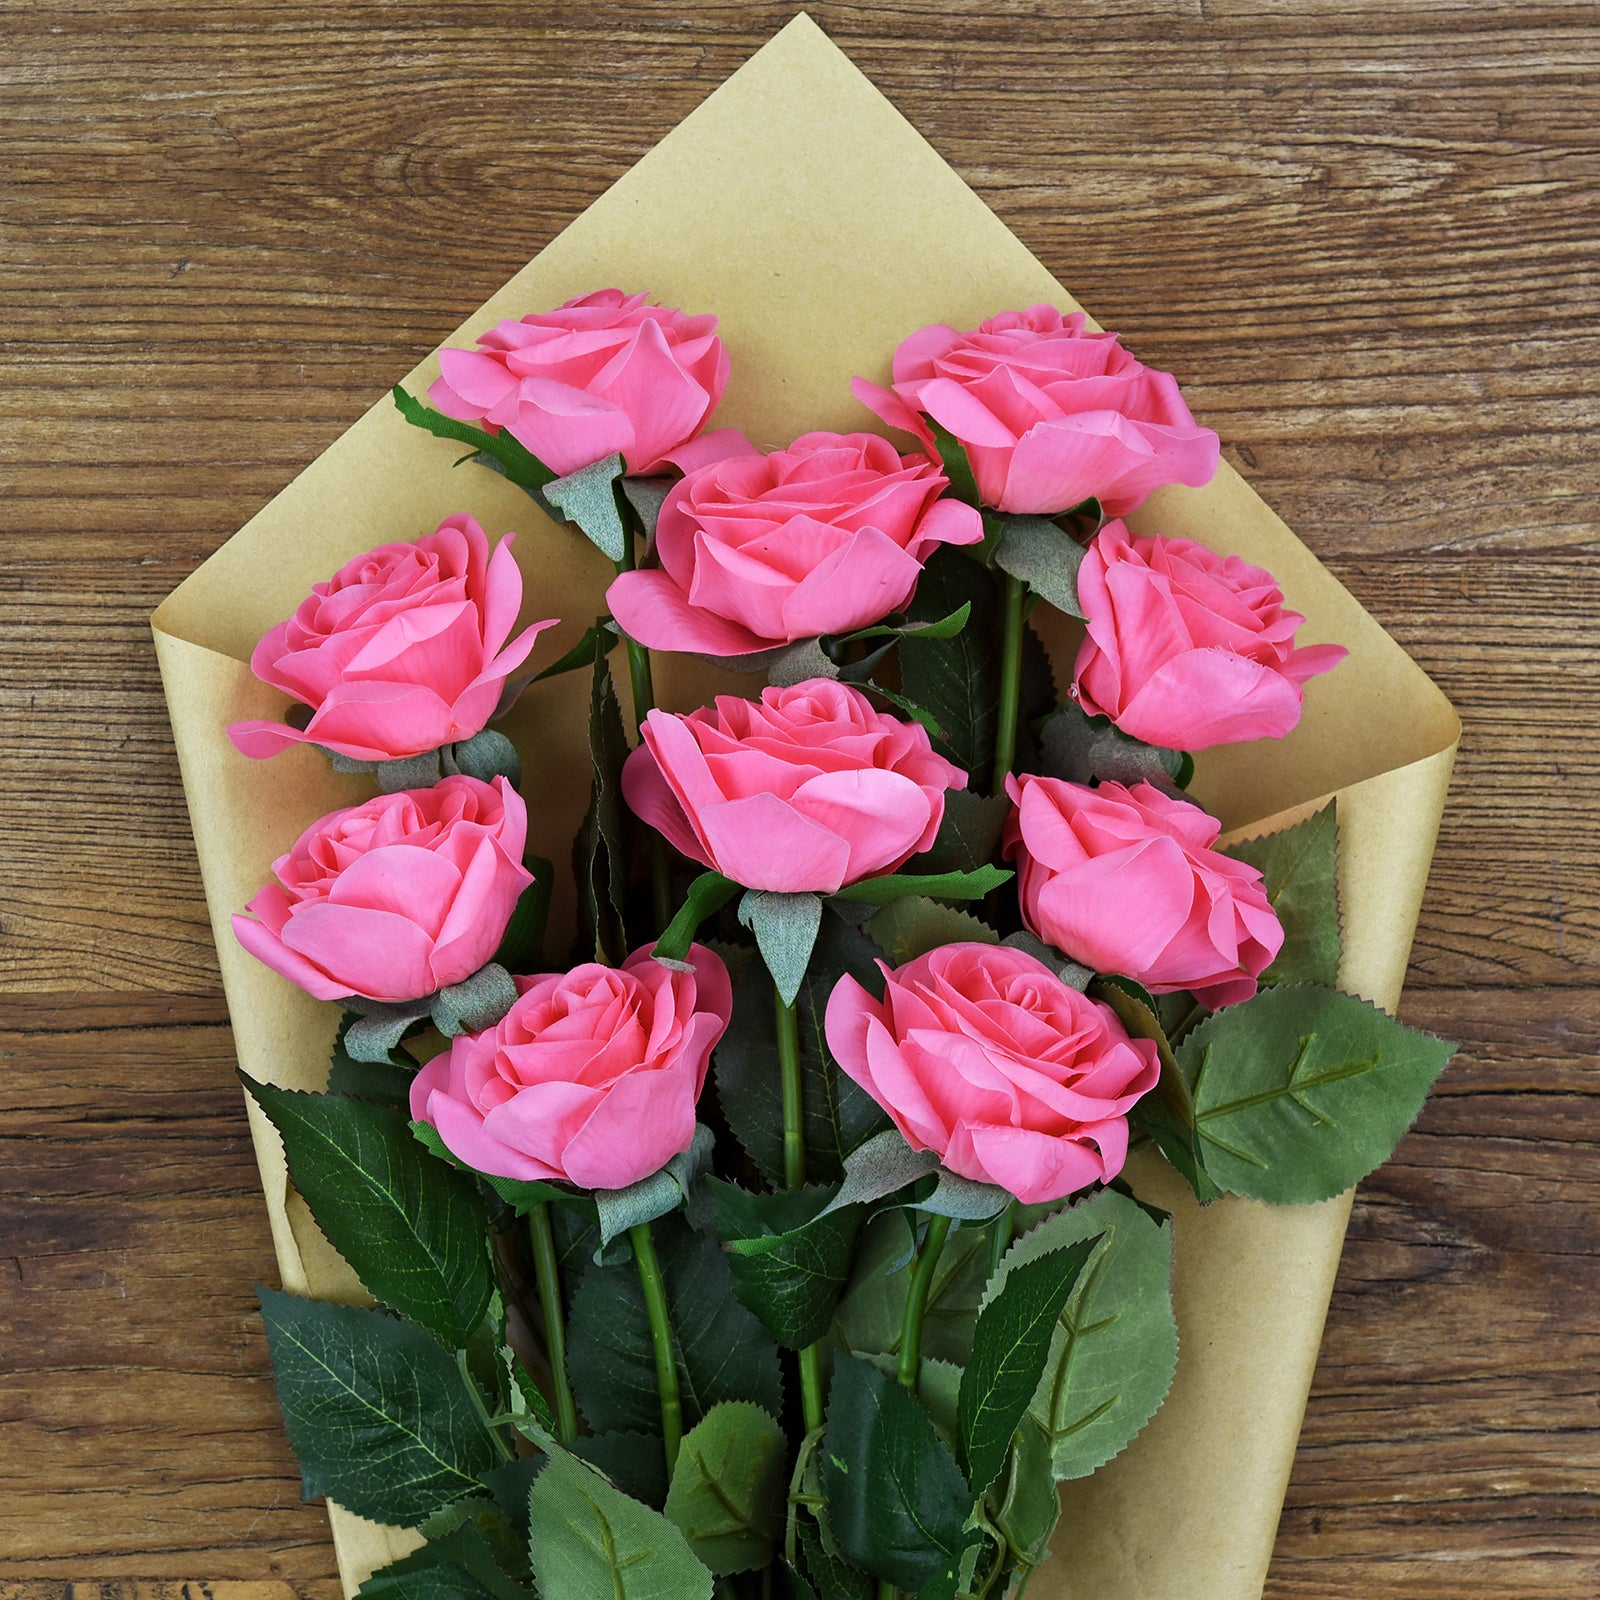 Magenta Pink Real Touch Silk Artificial Flowers 'Petals Feel and Look like Fresh Roses 10 Stems